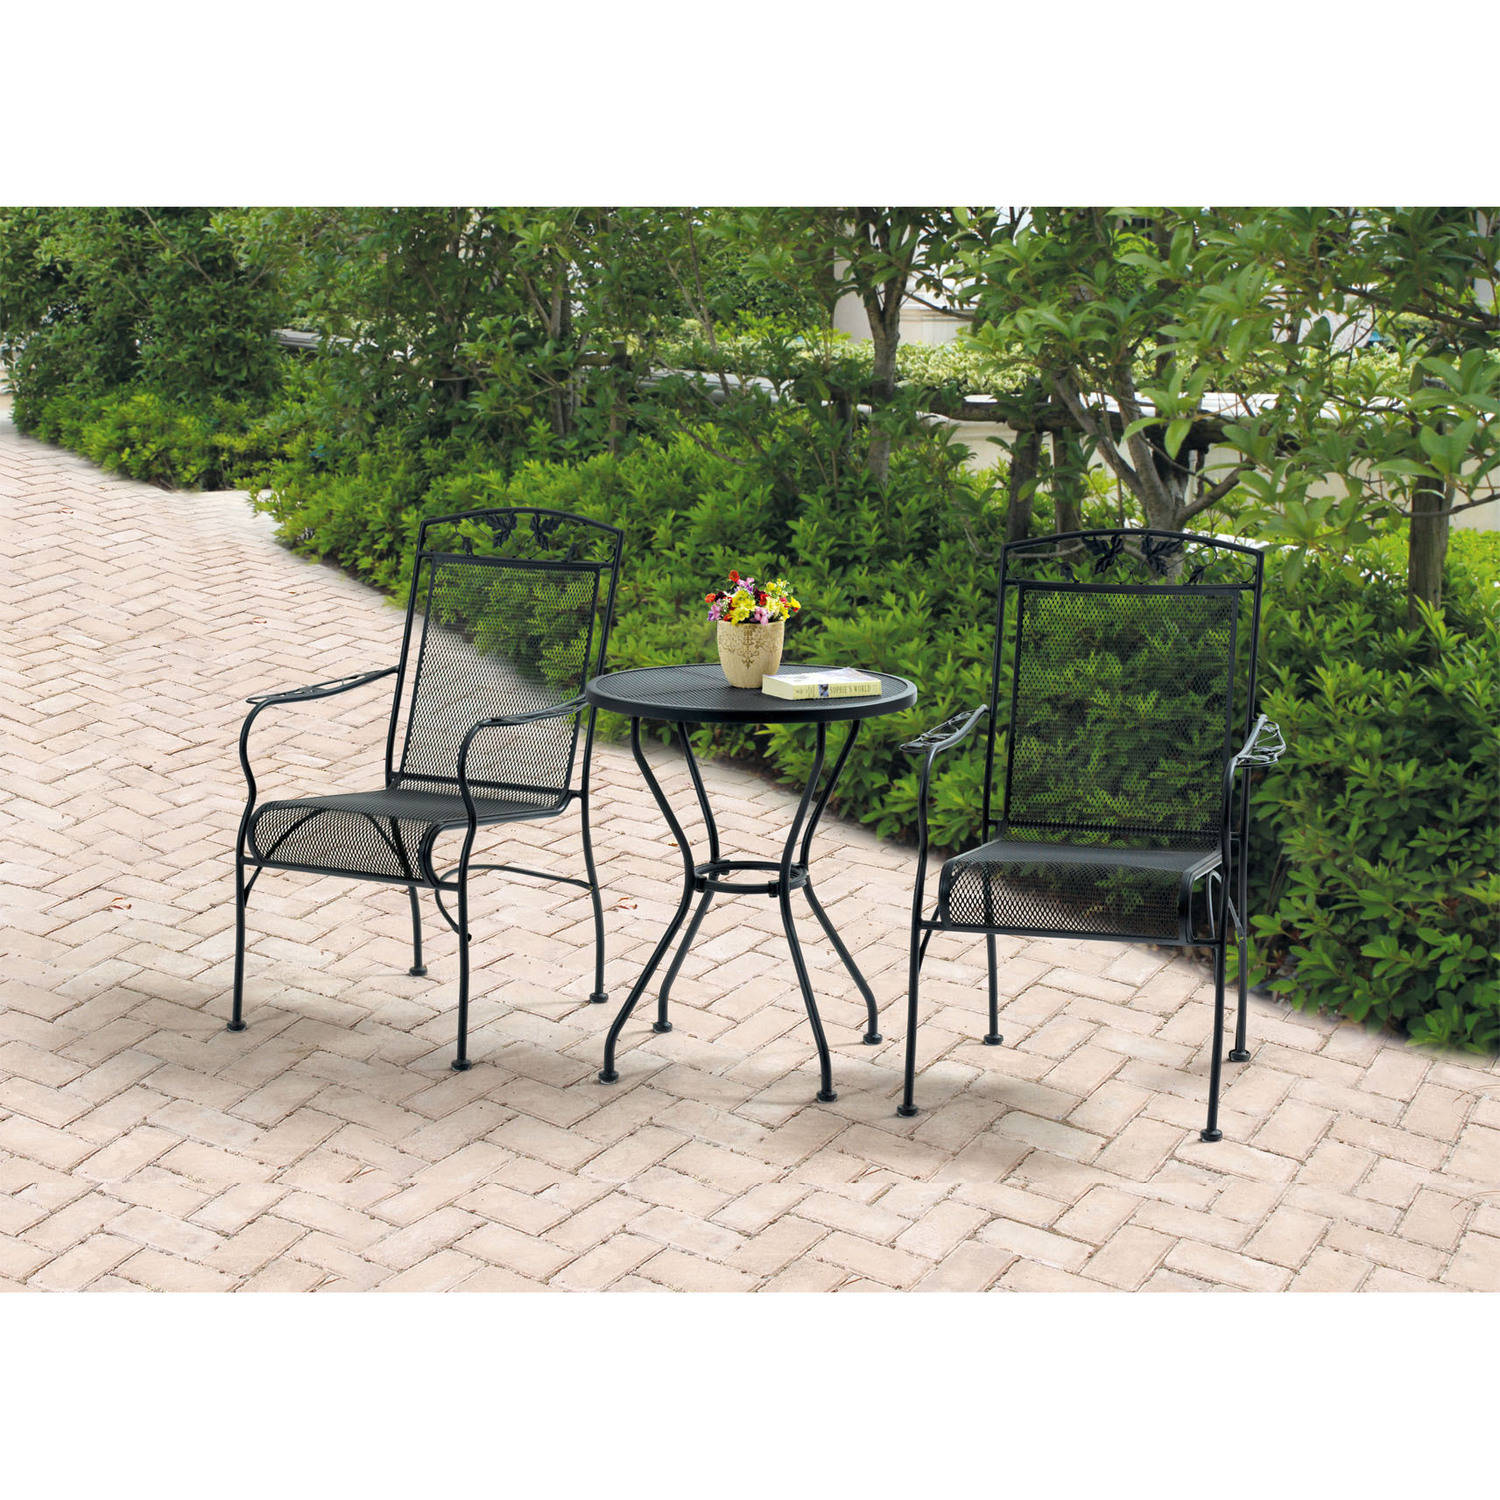 Permalink to Beautiful Rod Iron Patio Furniture